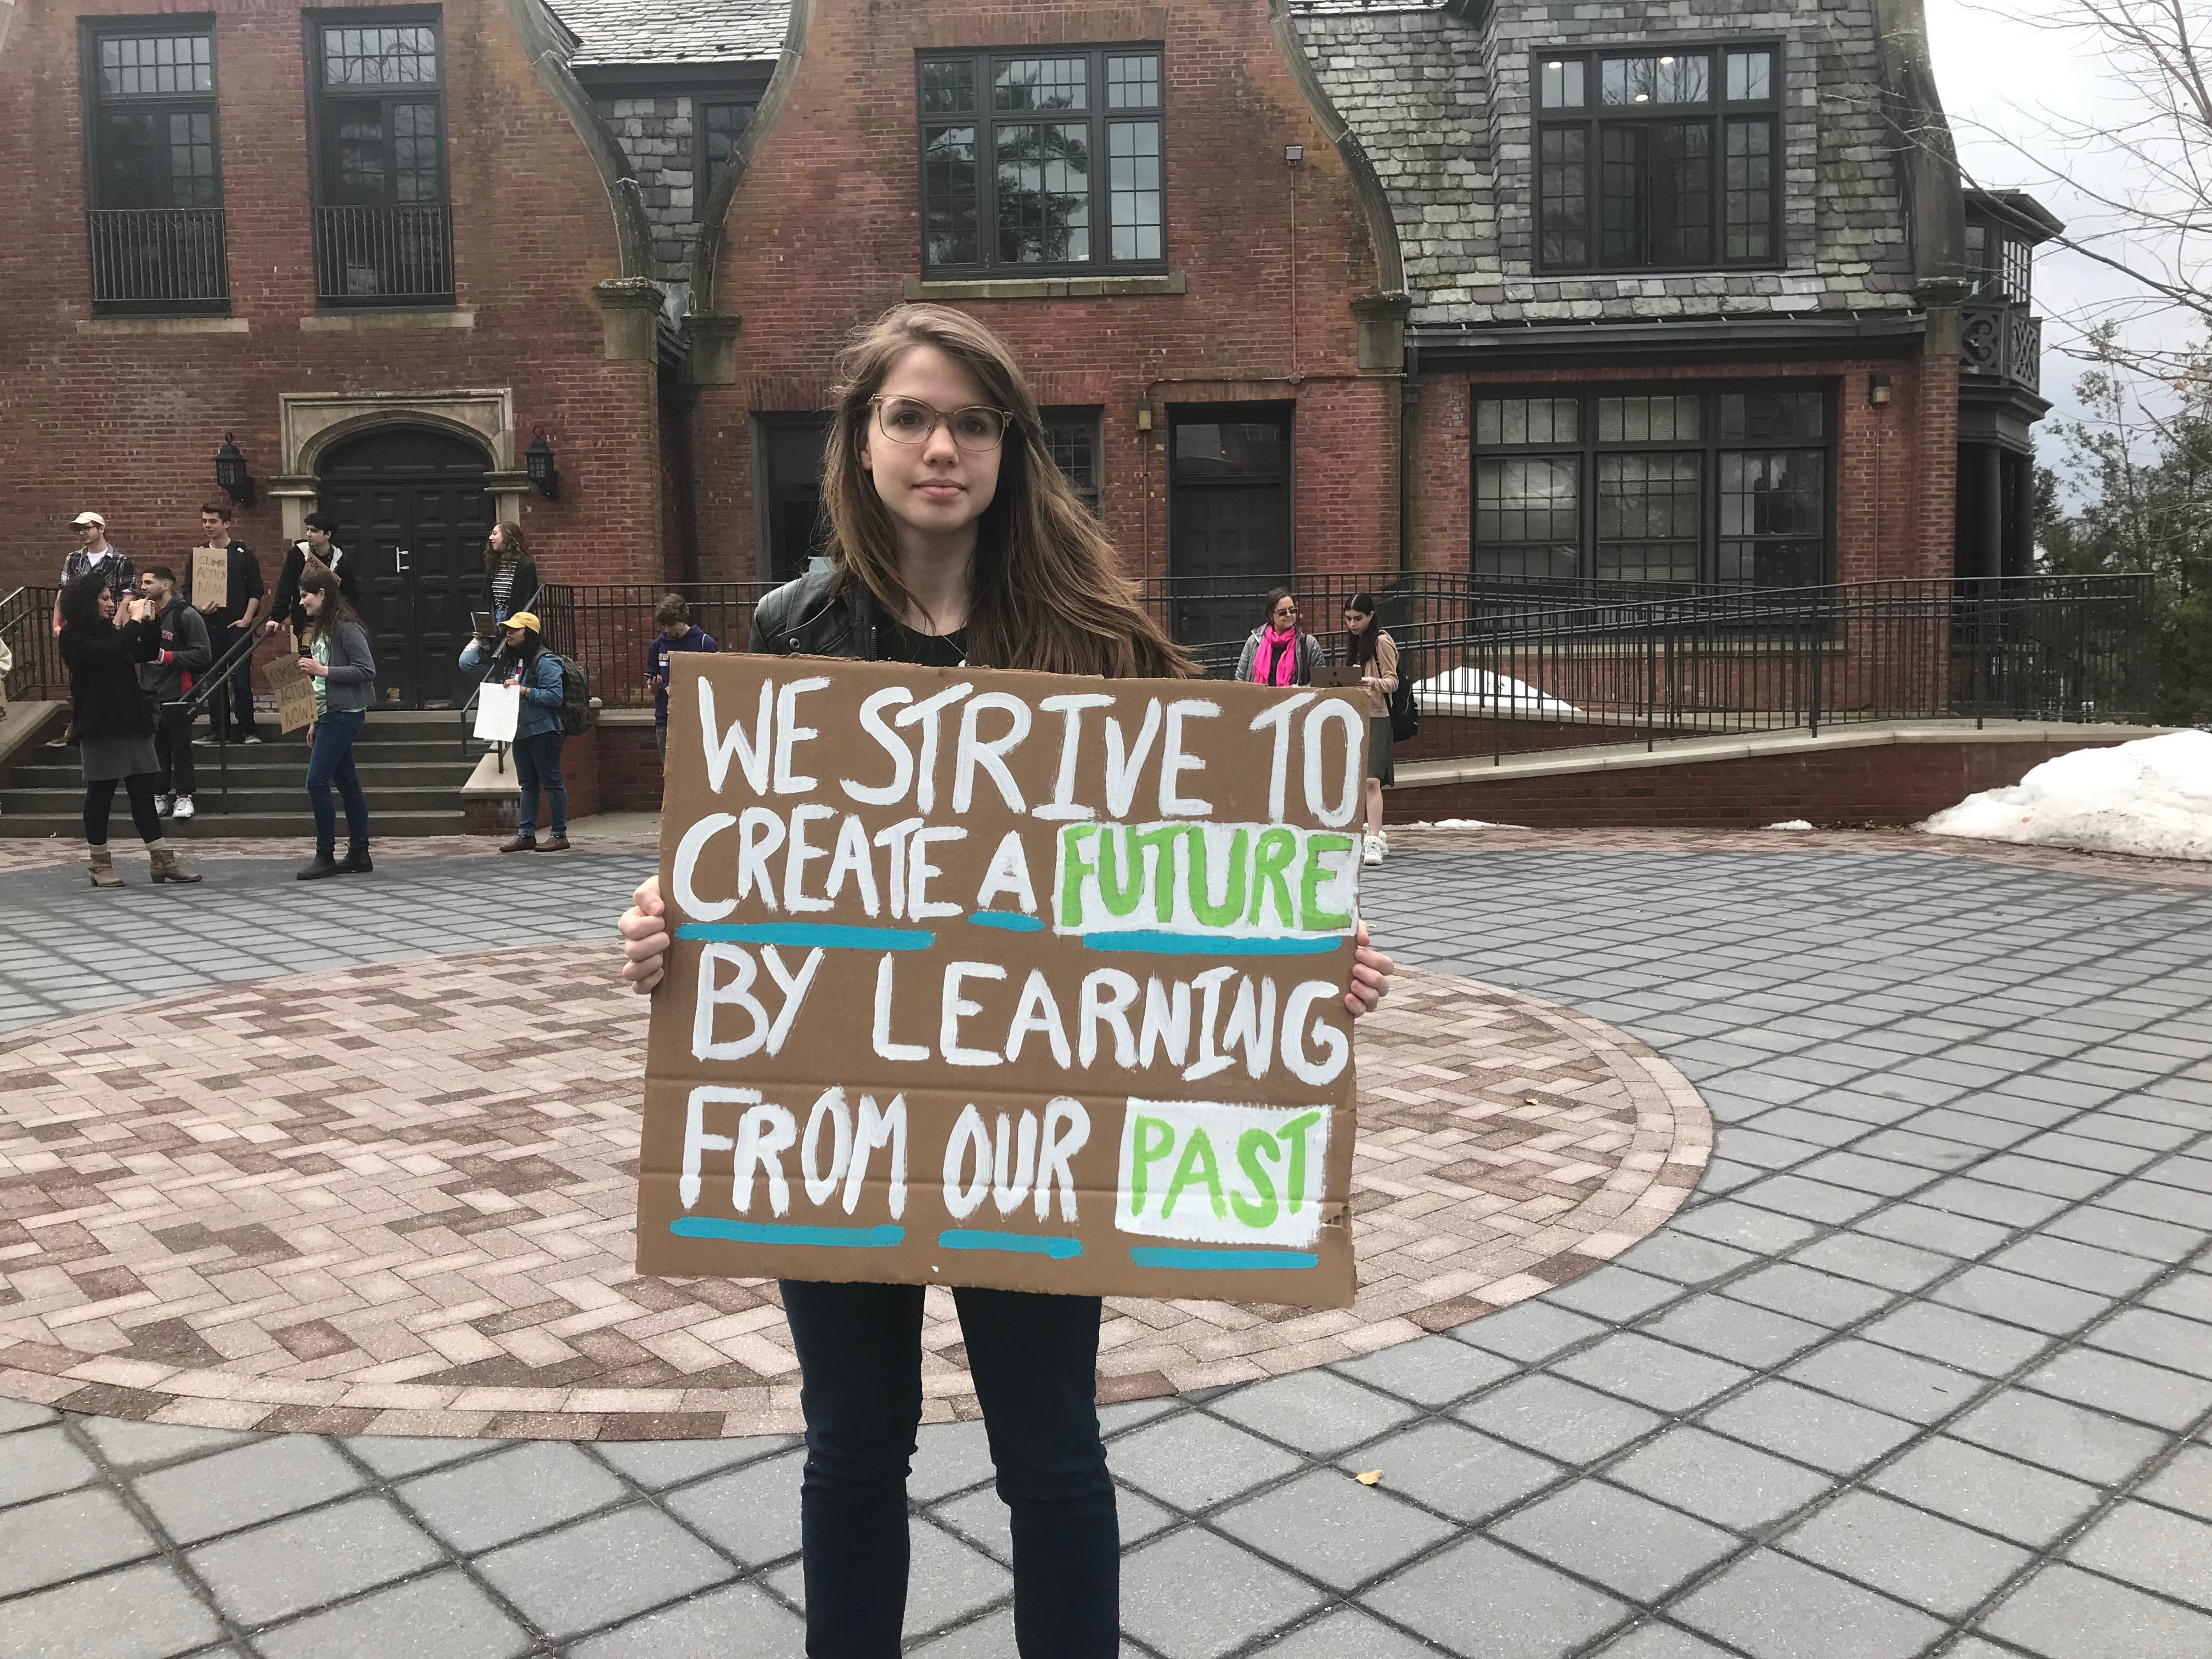 Ramapo College senior Angelica Pasquali holds a sign at the school's Birch Mansion promoting climate change awareness.